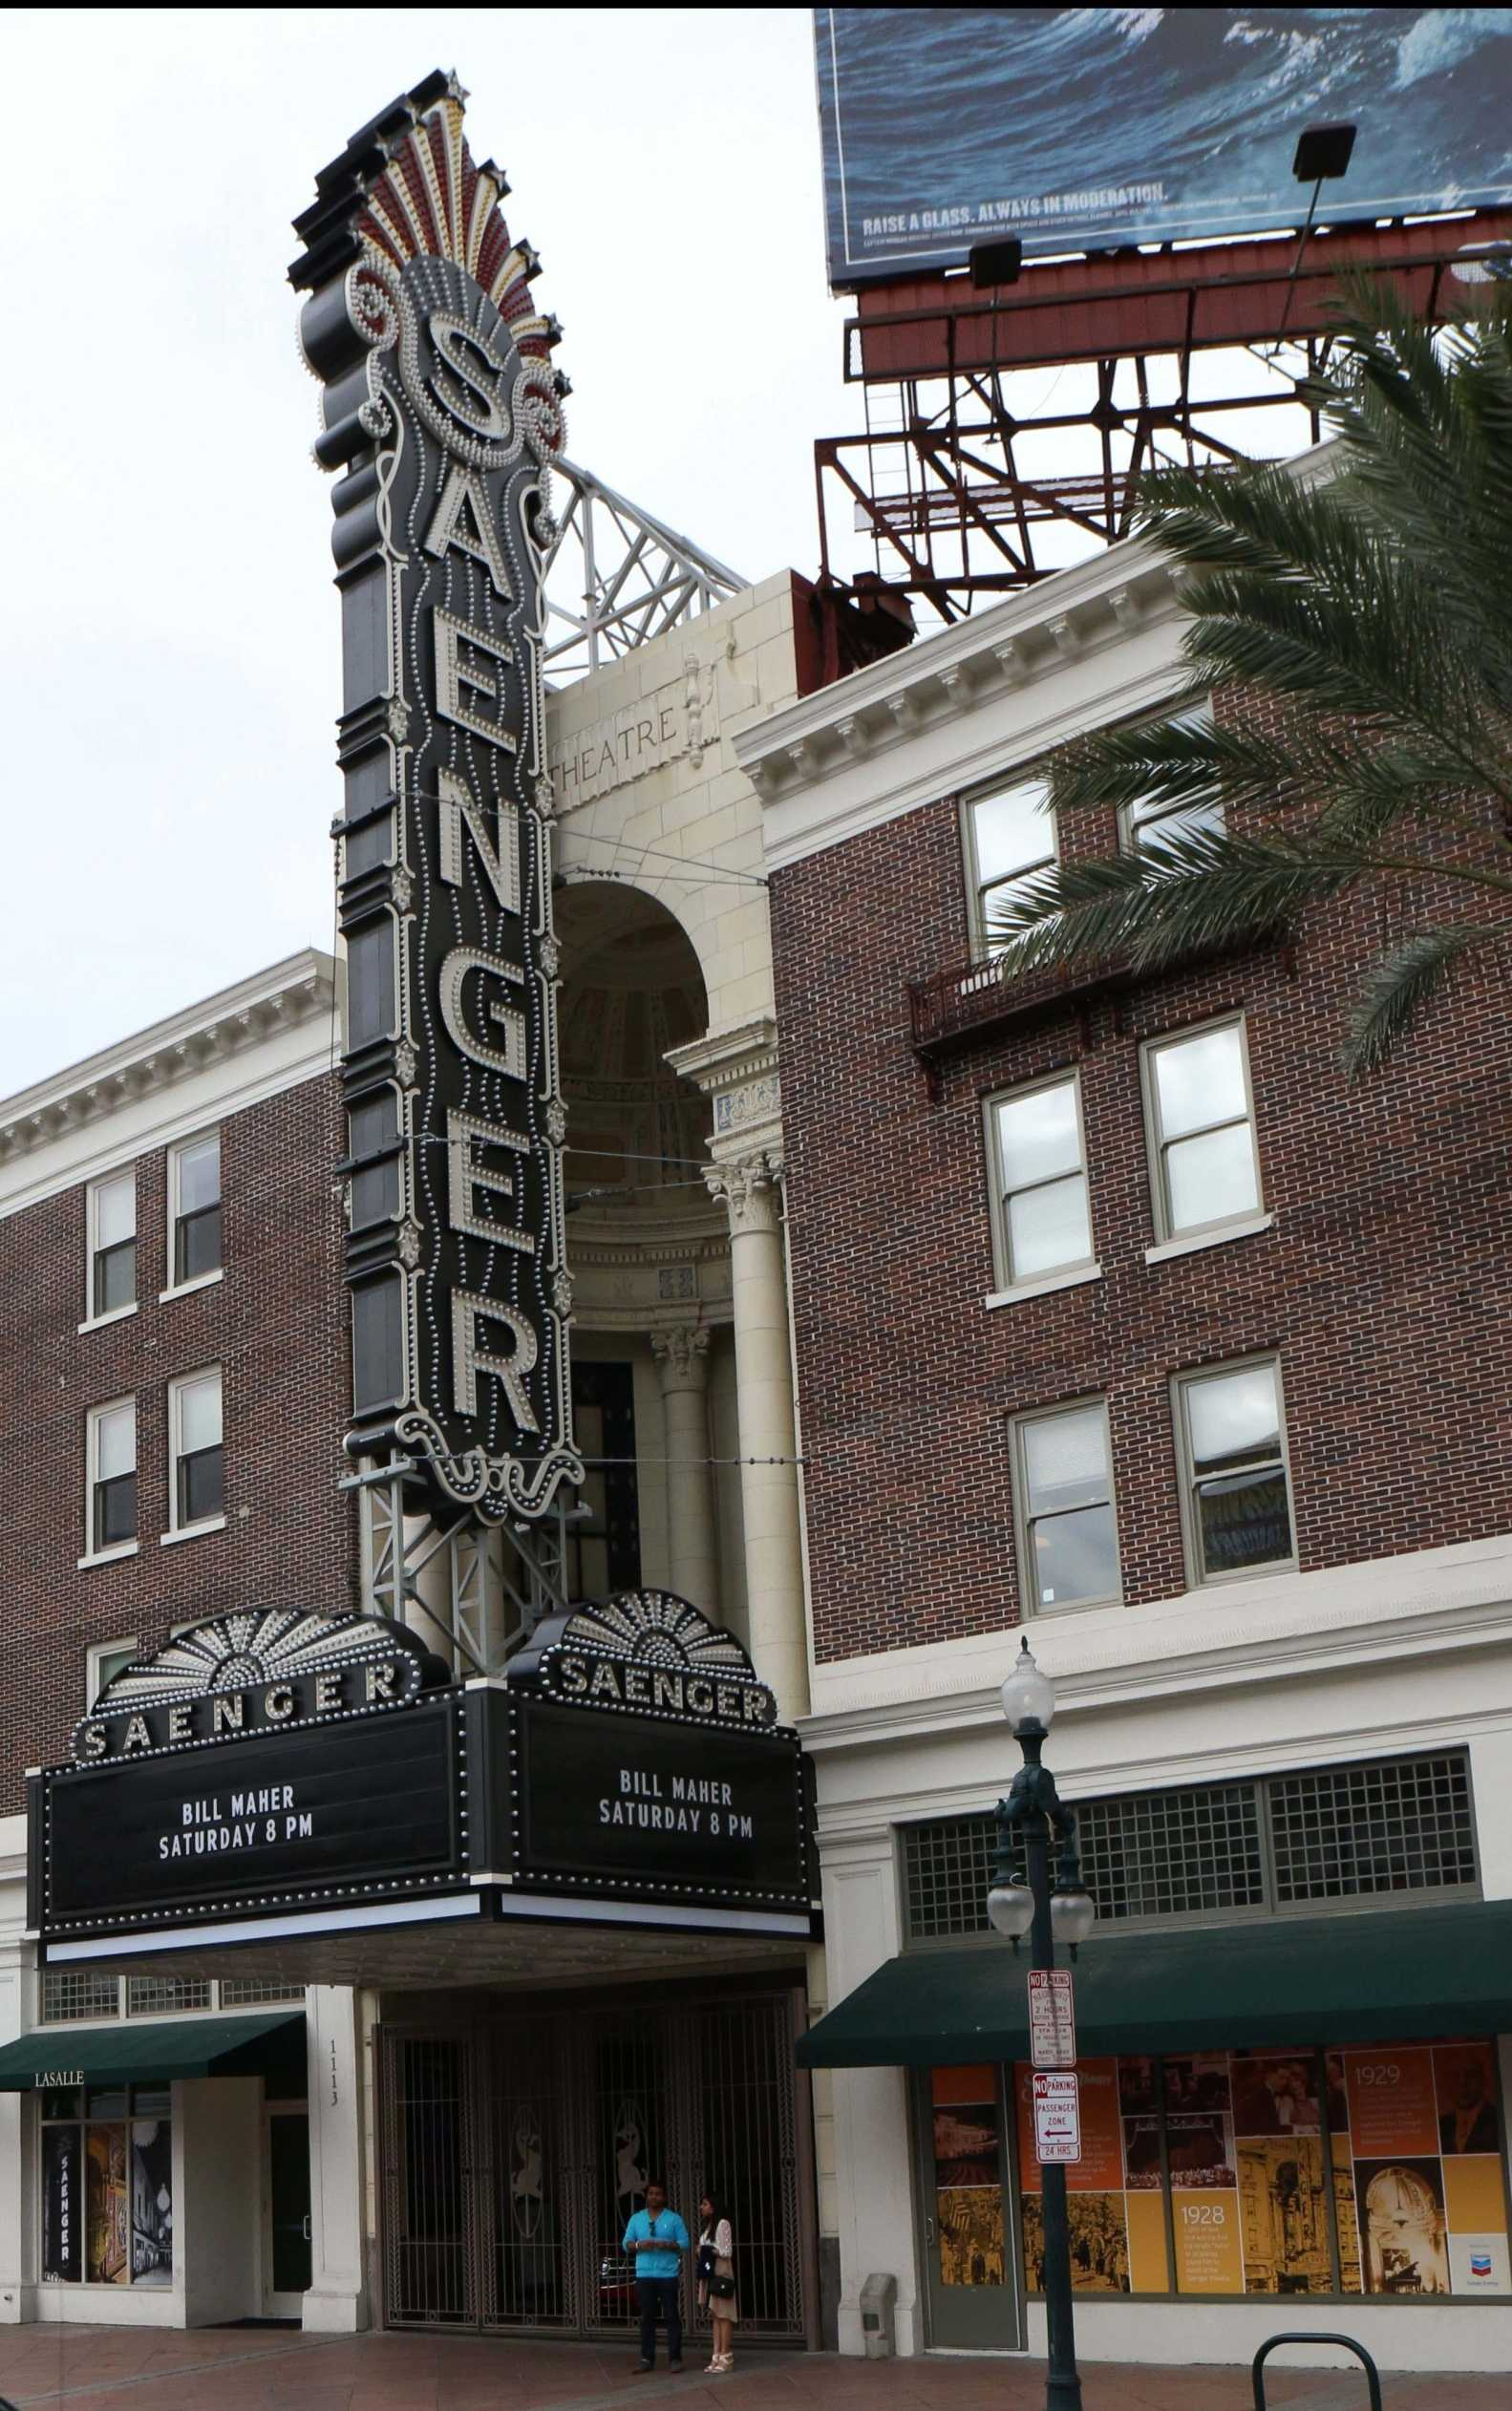 Renovated theater front of the Saenger Theatre on Canal Street. Numerous theaters around New Orleans have recently reopened to the public for events, including the Saenger Theatre.